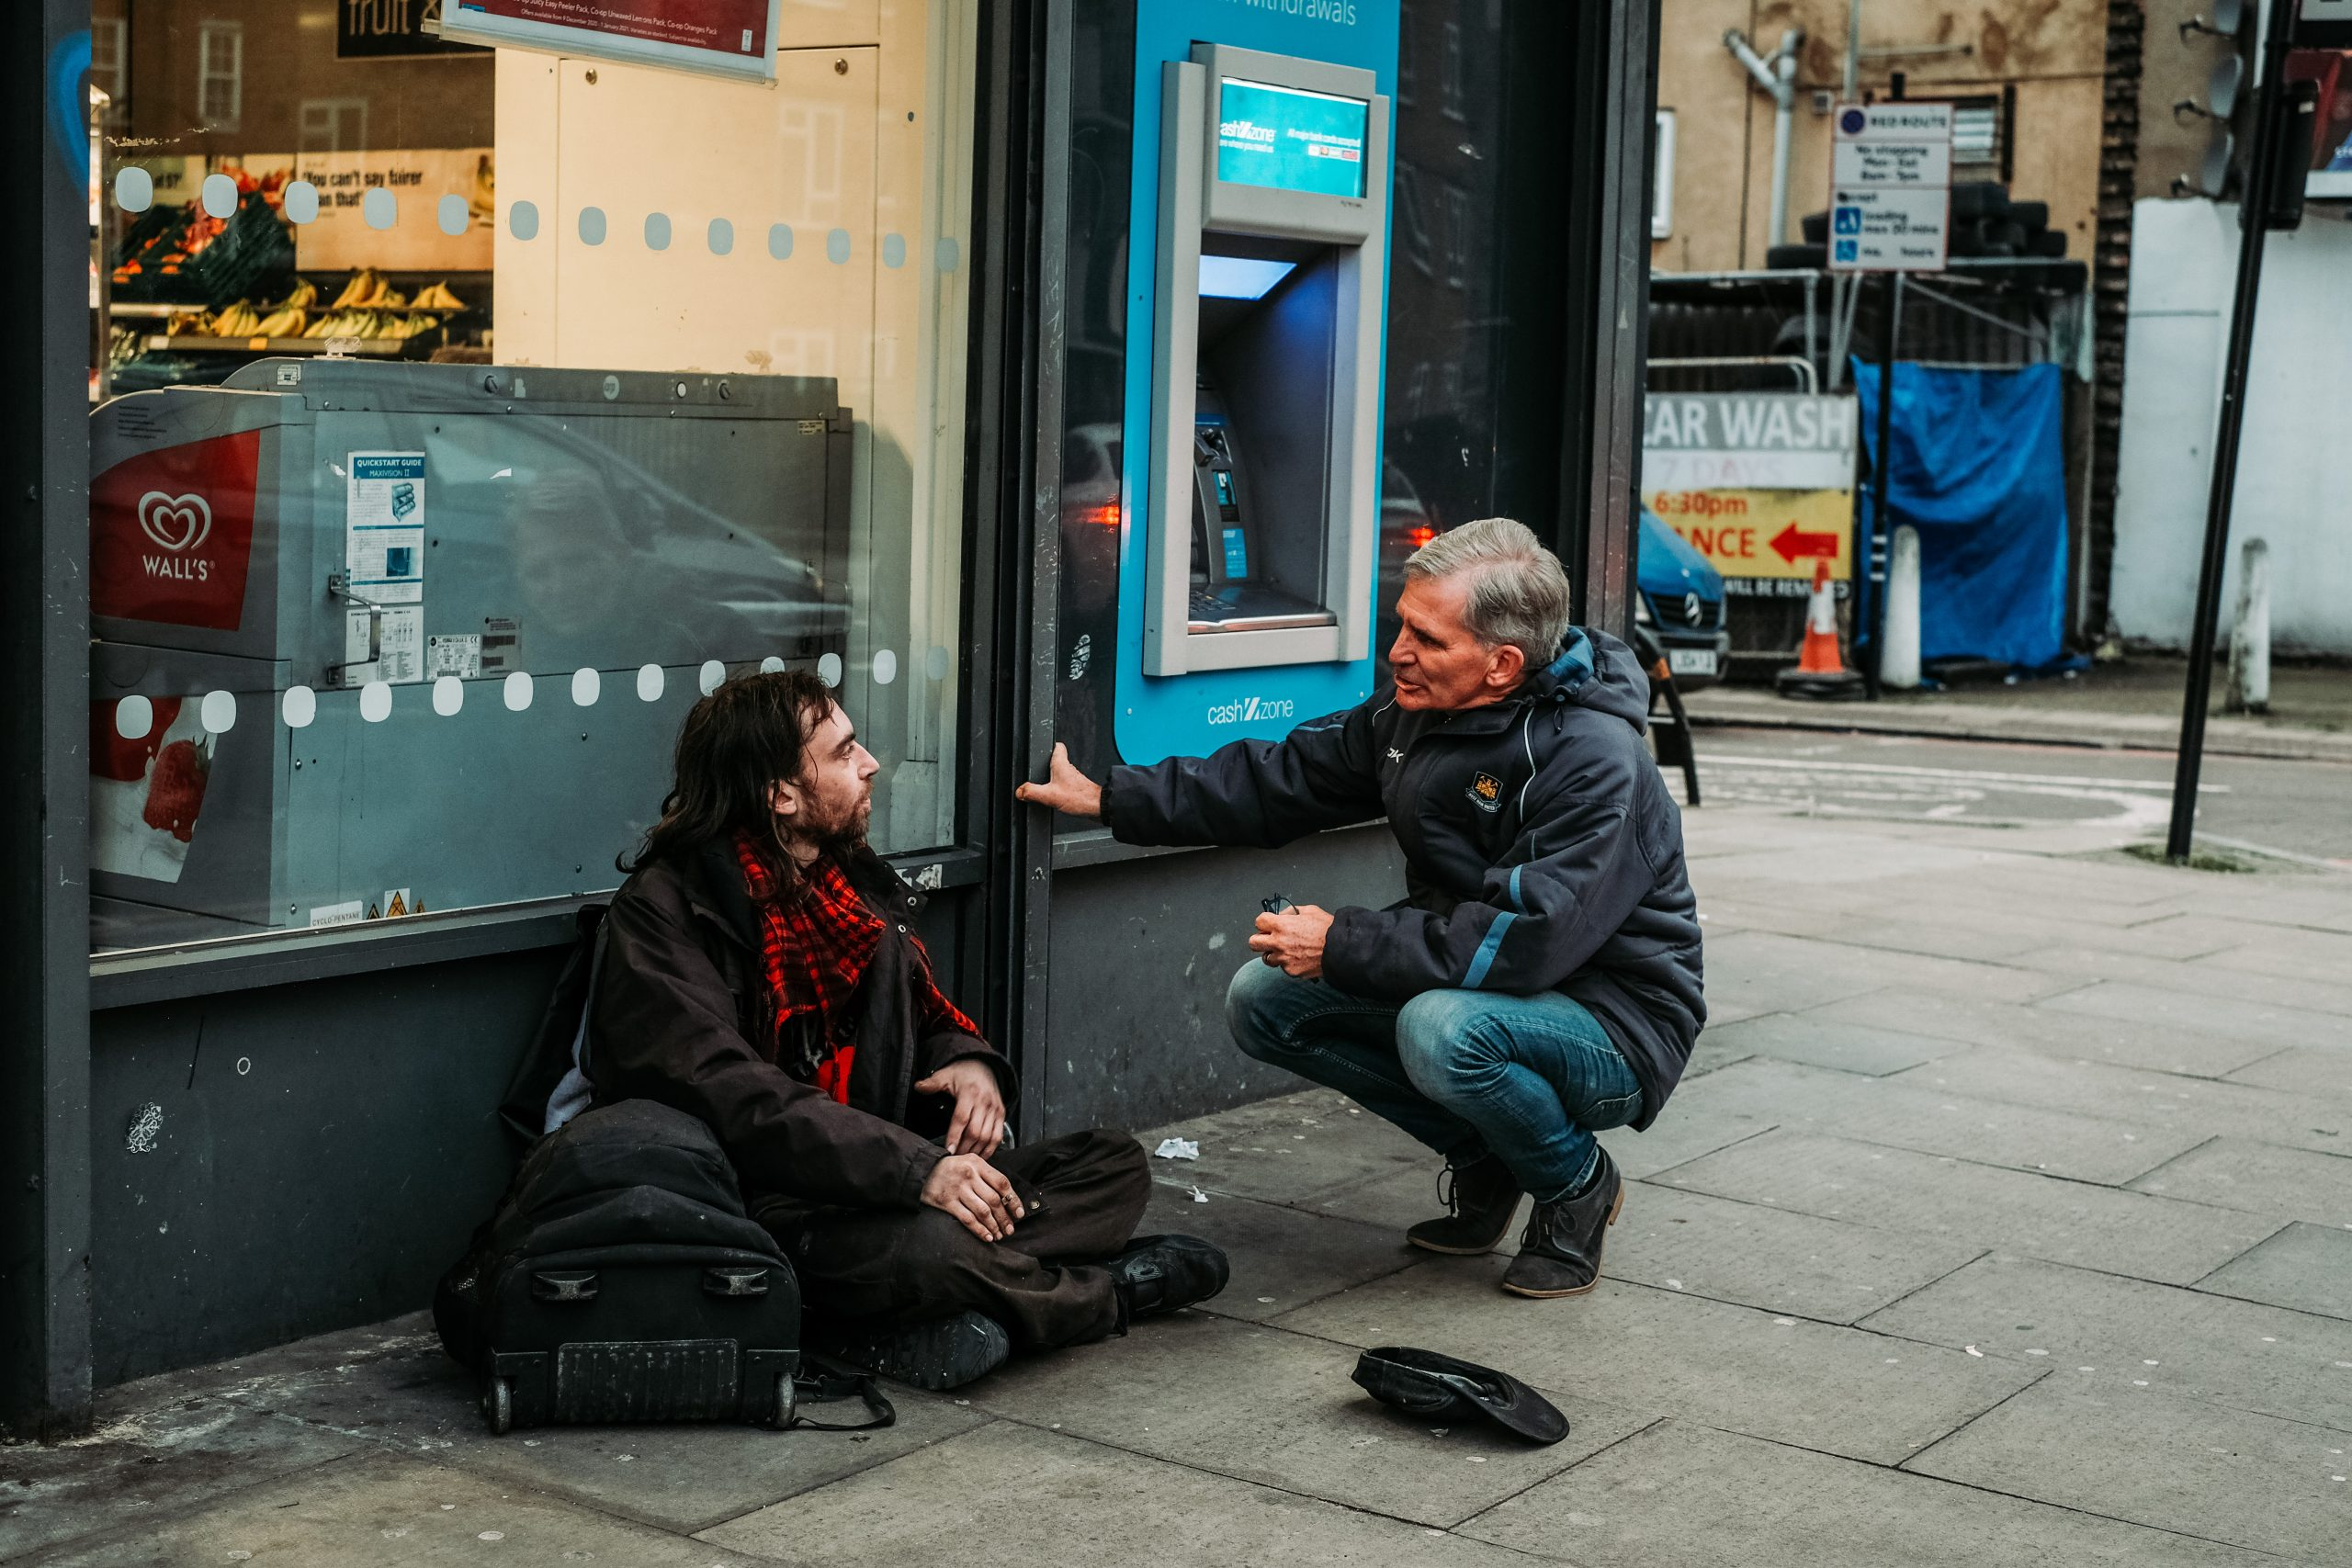 Stephen talking to a homeless man sitting on a street next to a cash point